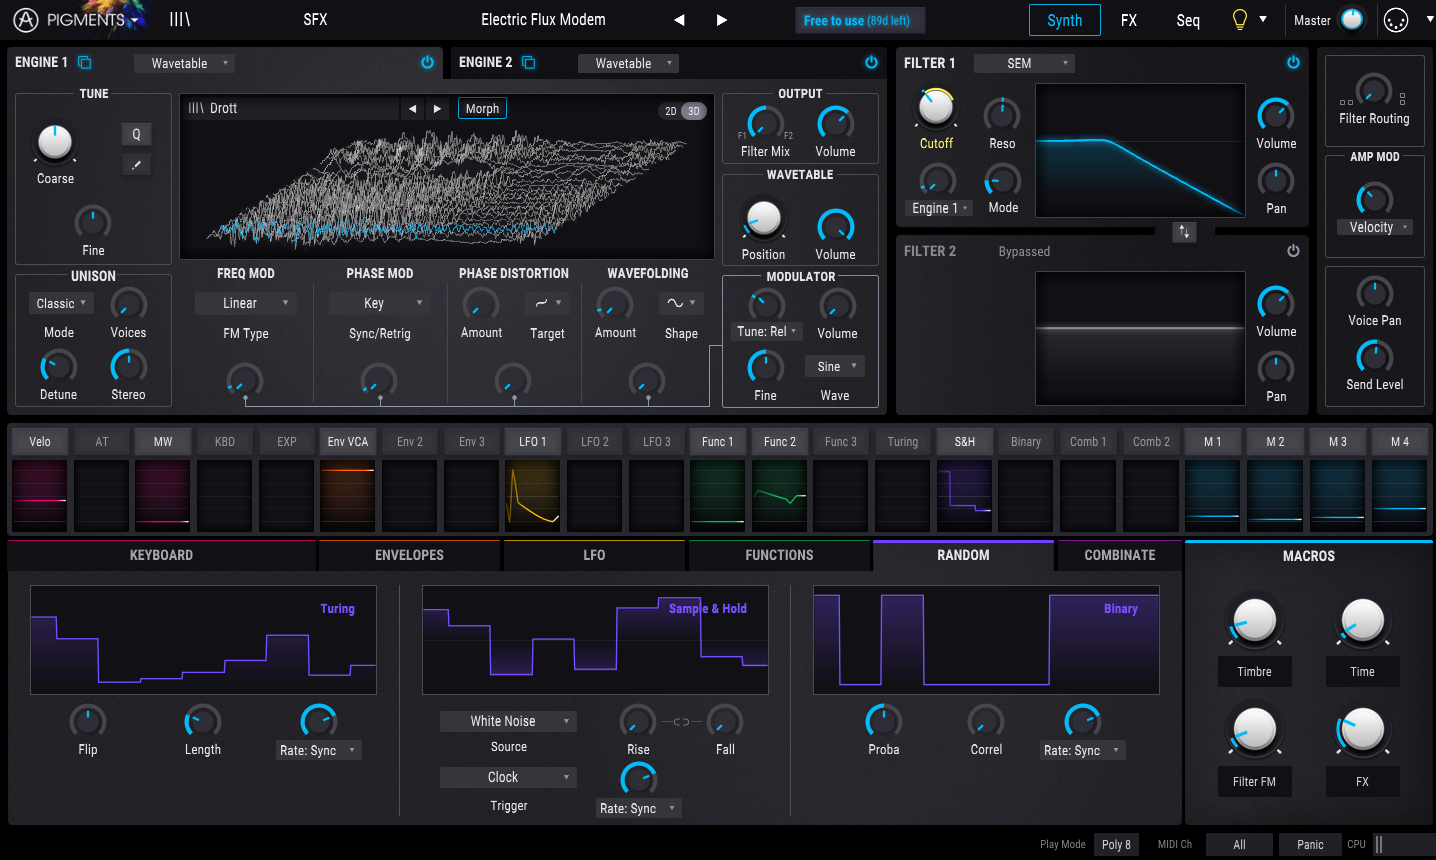 Pigments is a new hybrid synth from Arturia, and you can try it free